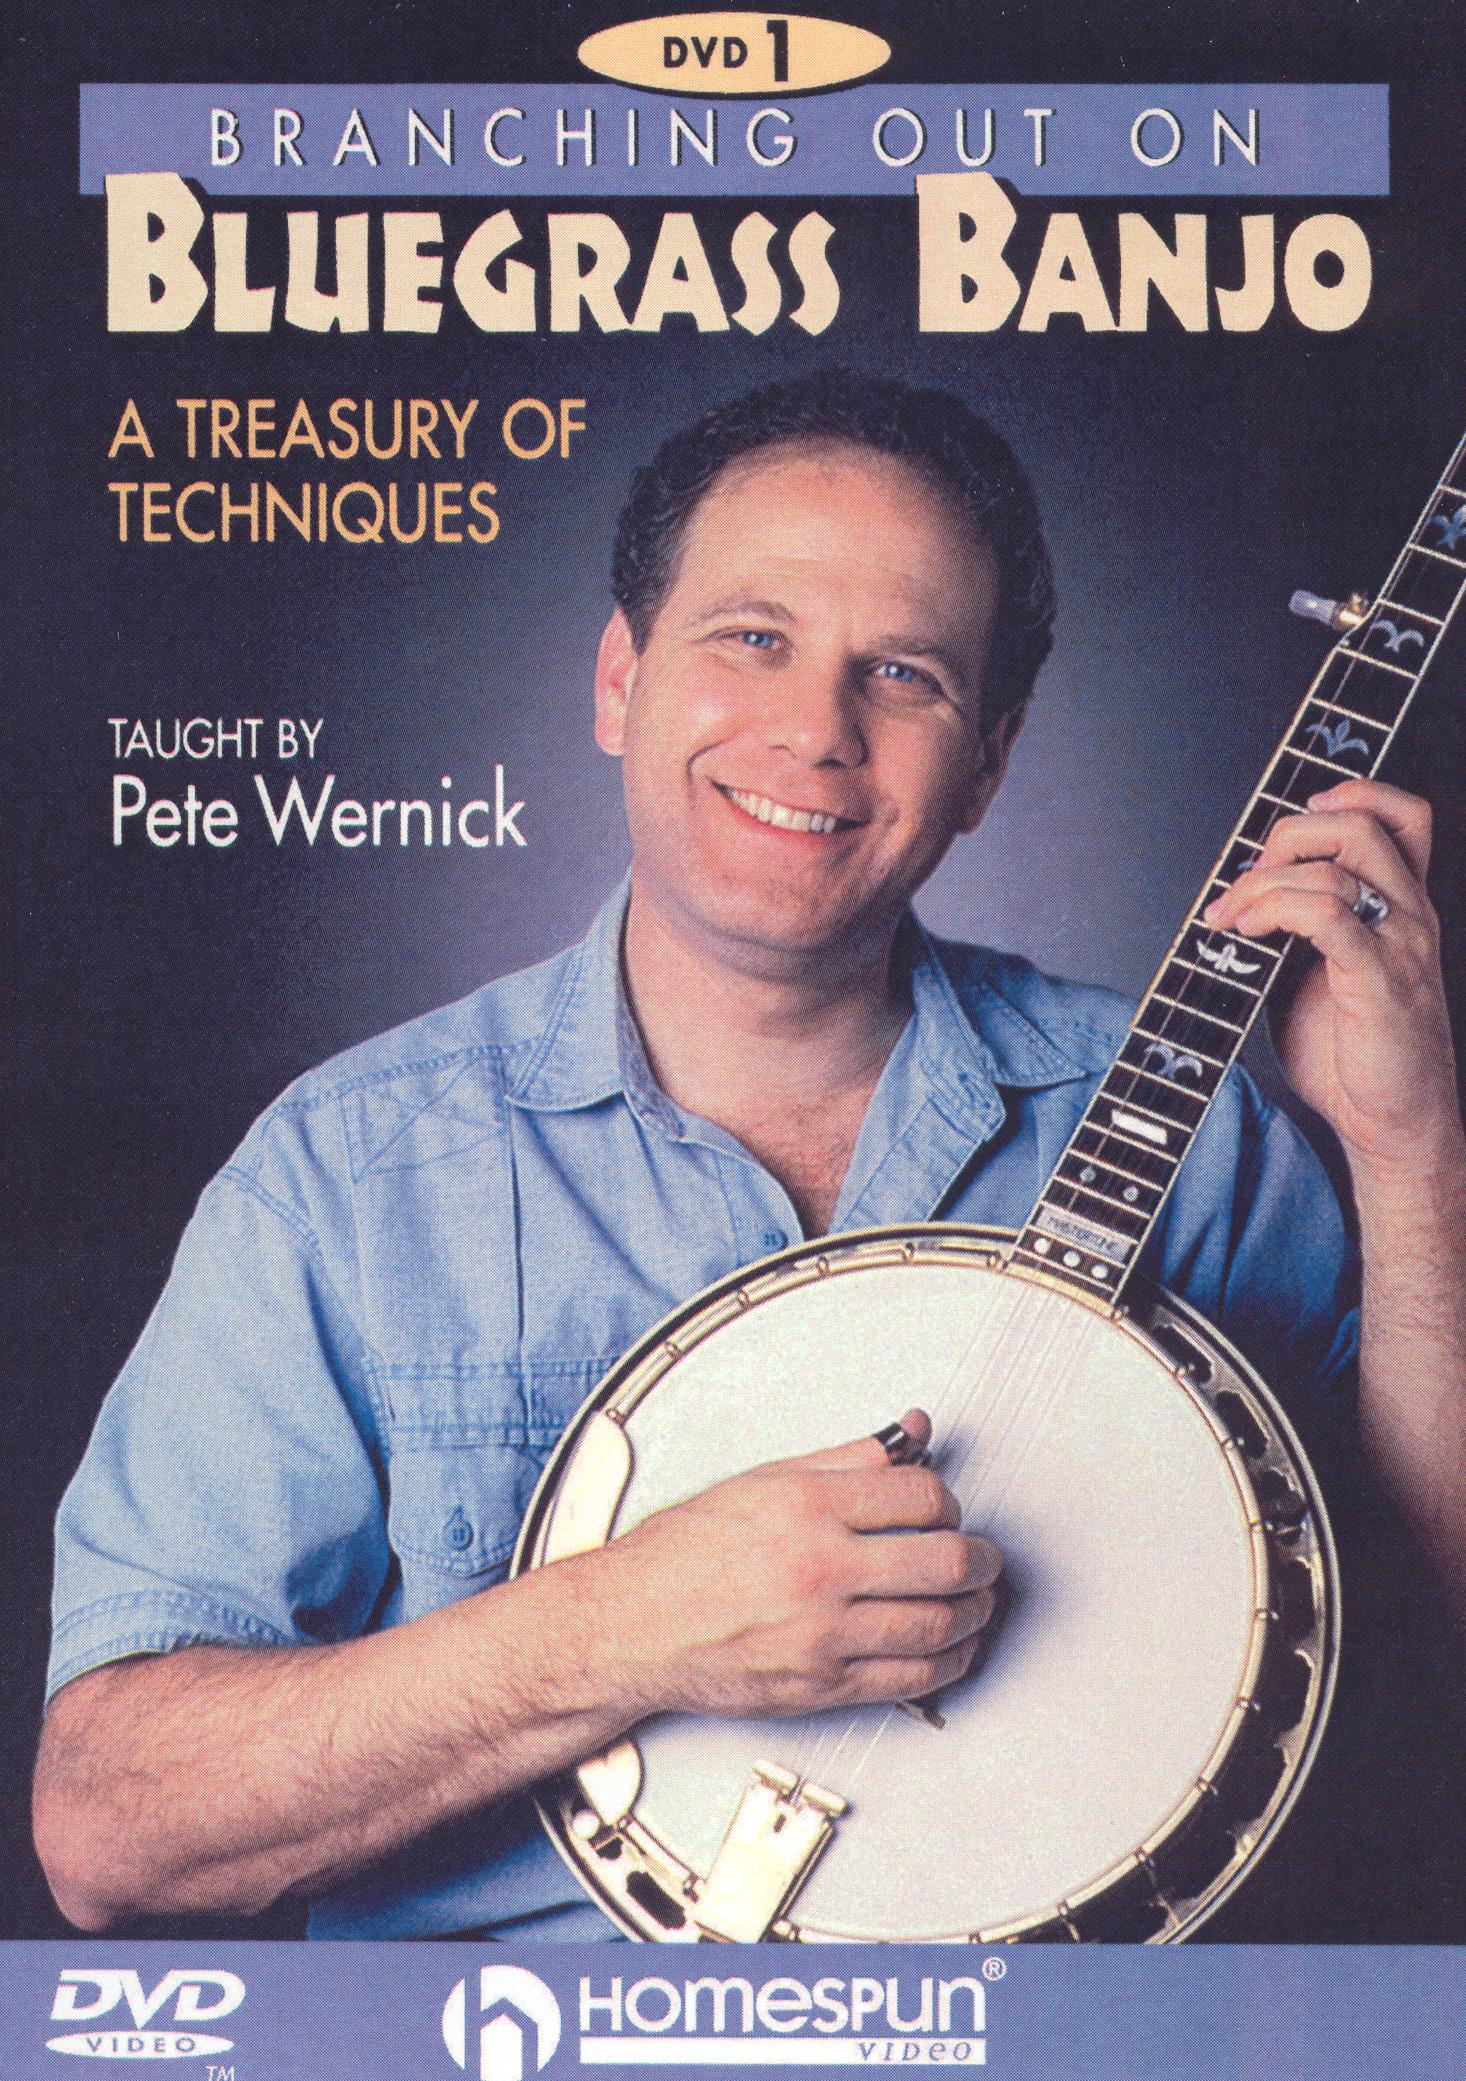 Branching Out on Bluegrass Banjo 1: A Treasury of Techniques